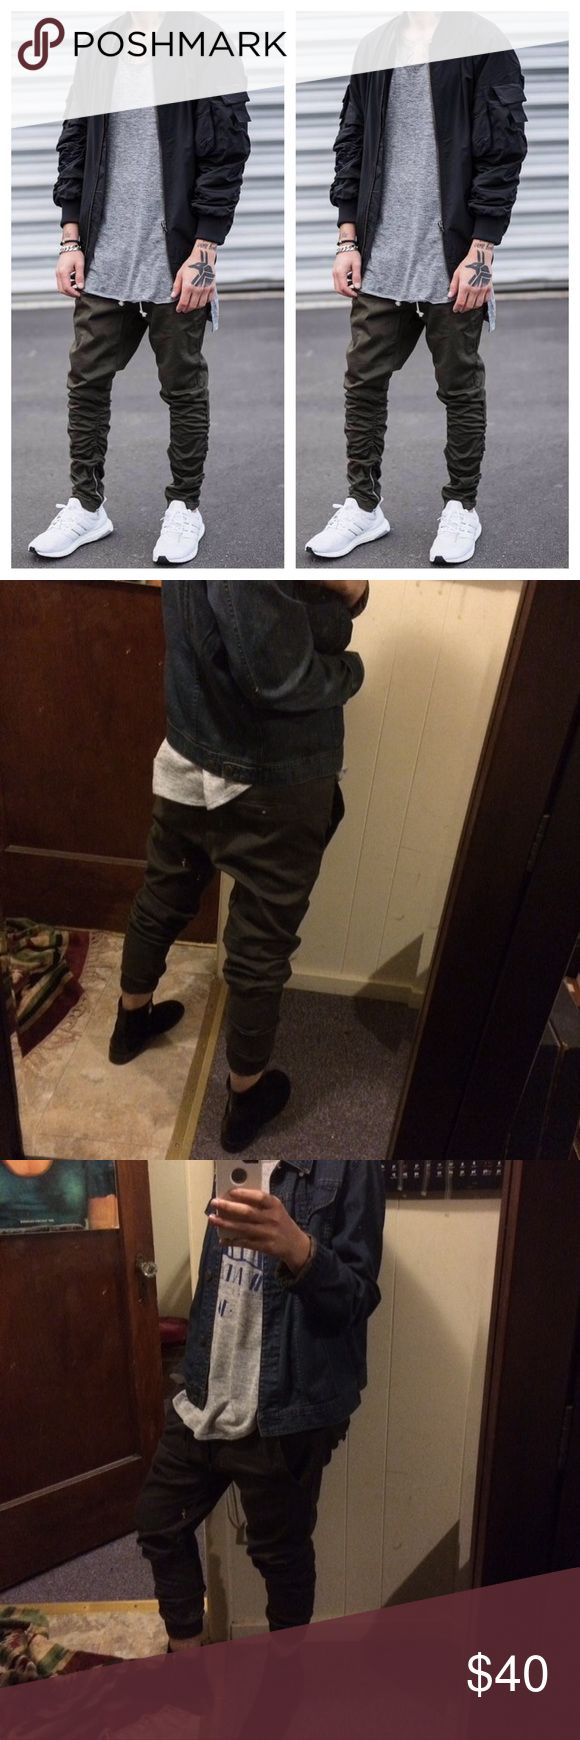 ASOS Mens jogger These are not sweatpants material they are chino pant material. Size small in men's, waist is 34. They are army green/ grey. Photo shown is actual promo pic. All photos are of the actual jogger. ASOS Pants Sweatpants & Joggers